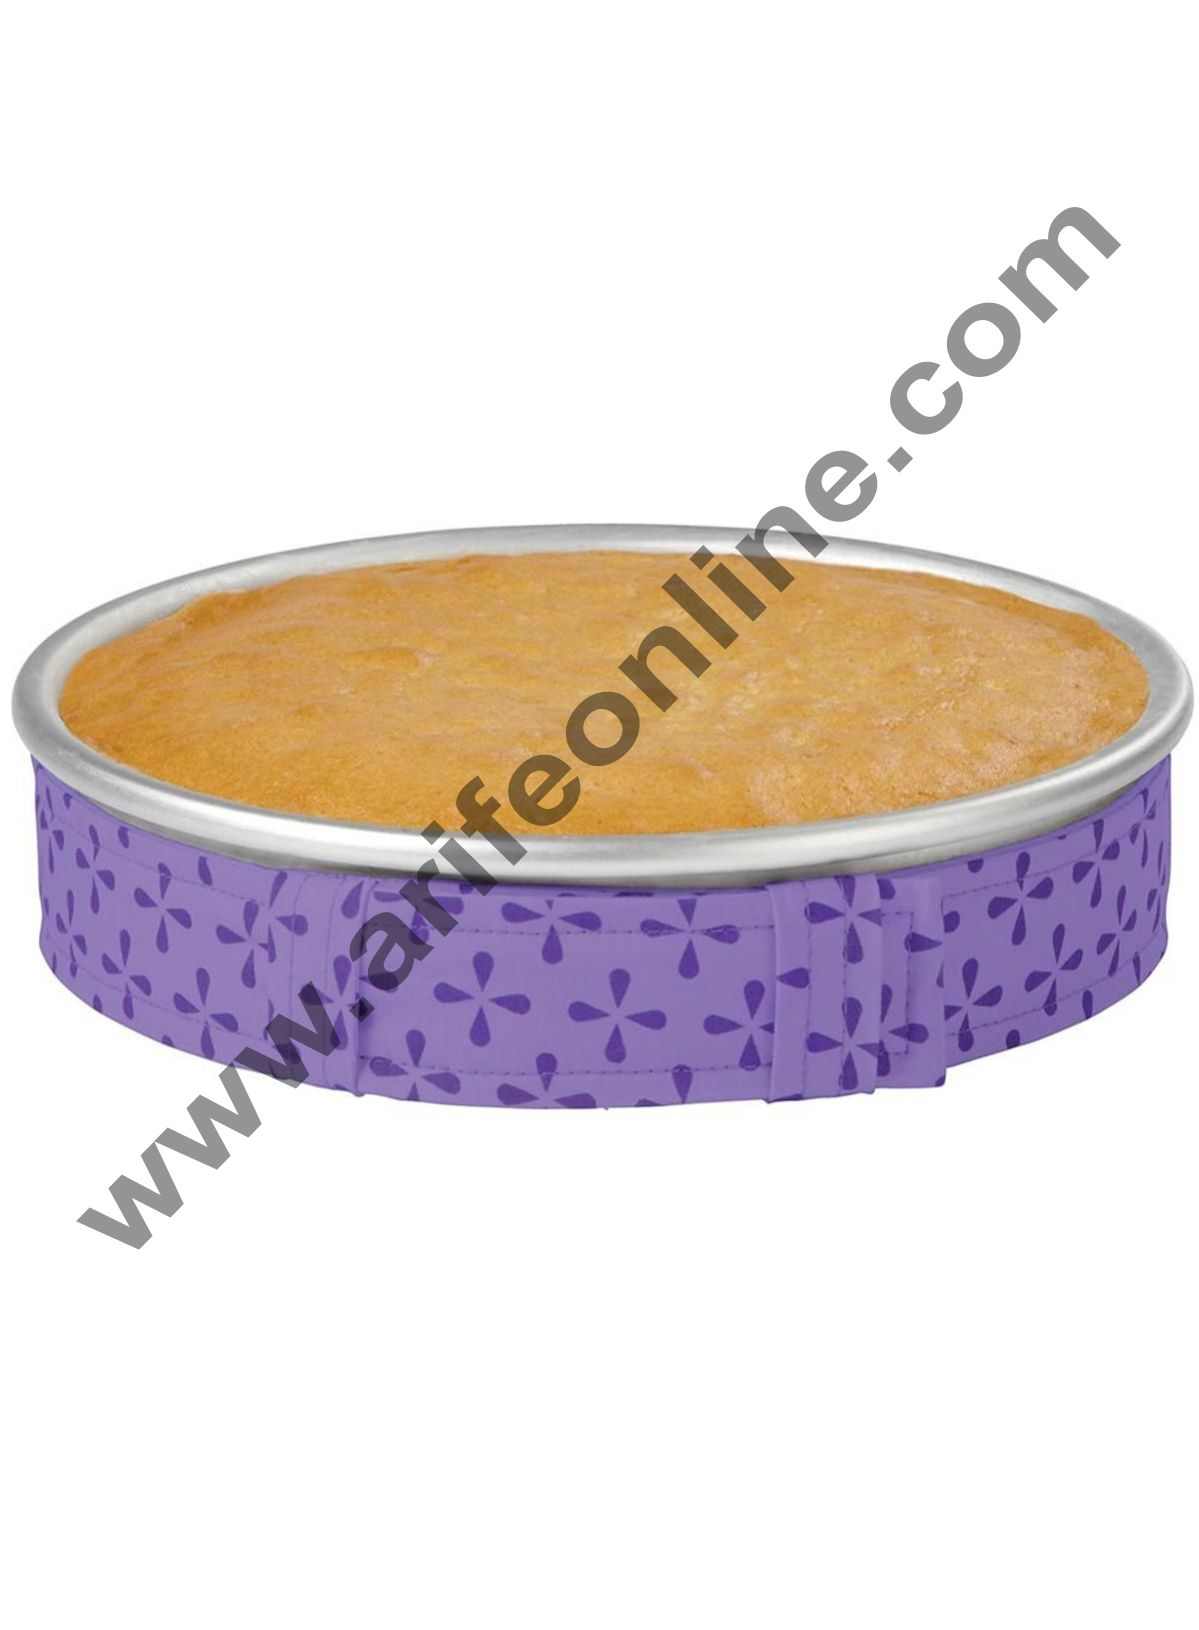 Cake Decor 1Pc Cake Pan Strips Protector Bake Even Strip Belt Bake Even Bake Moist Level Cakes Baking Tool Bakeware